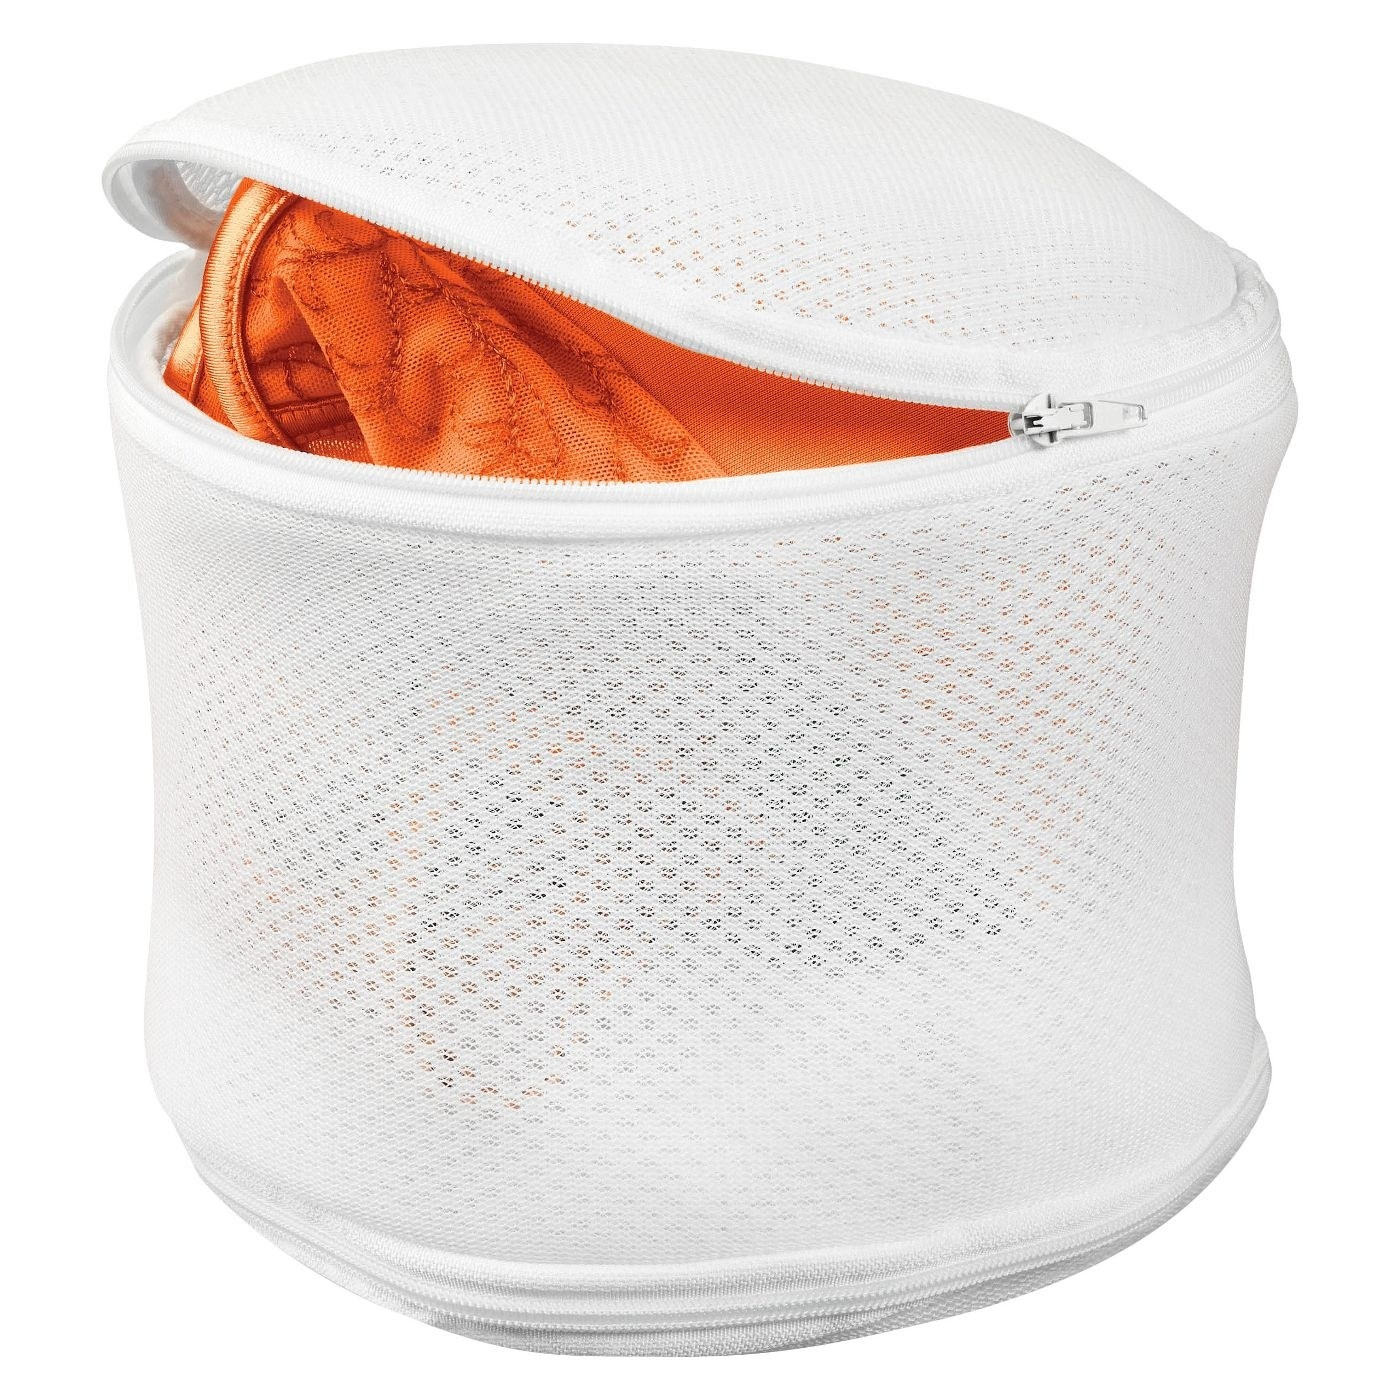 white mesh lingerie wash bag with an orange bra in it